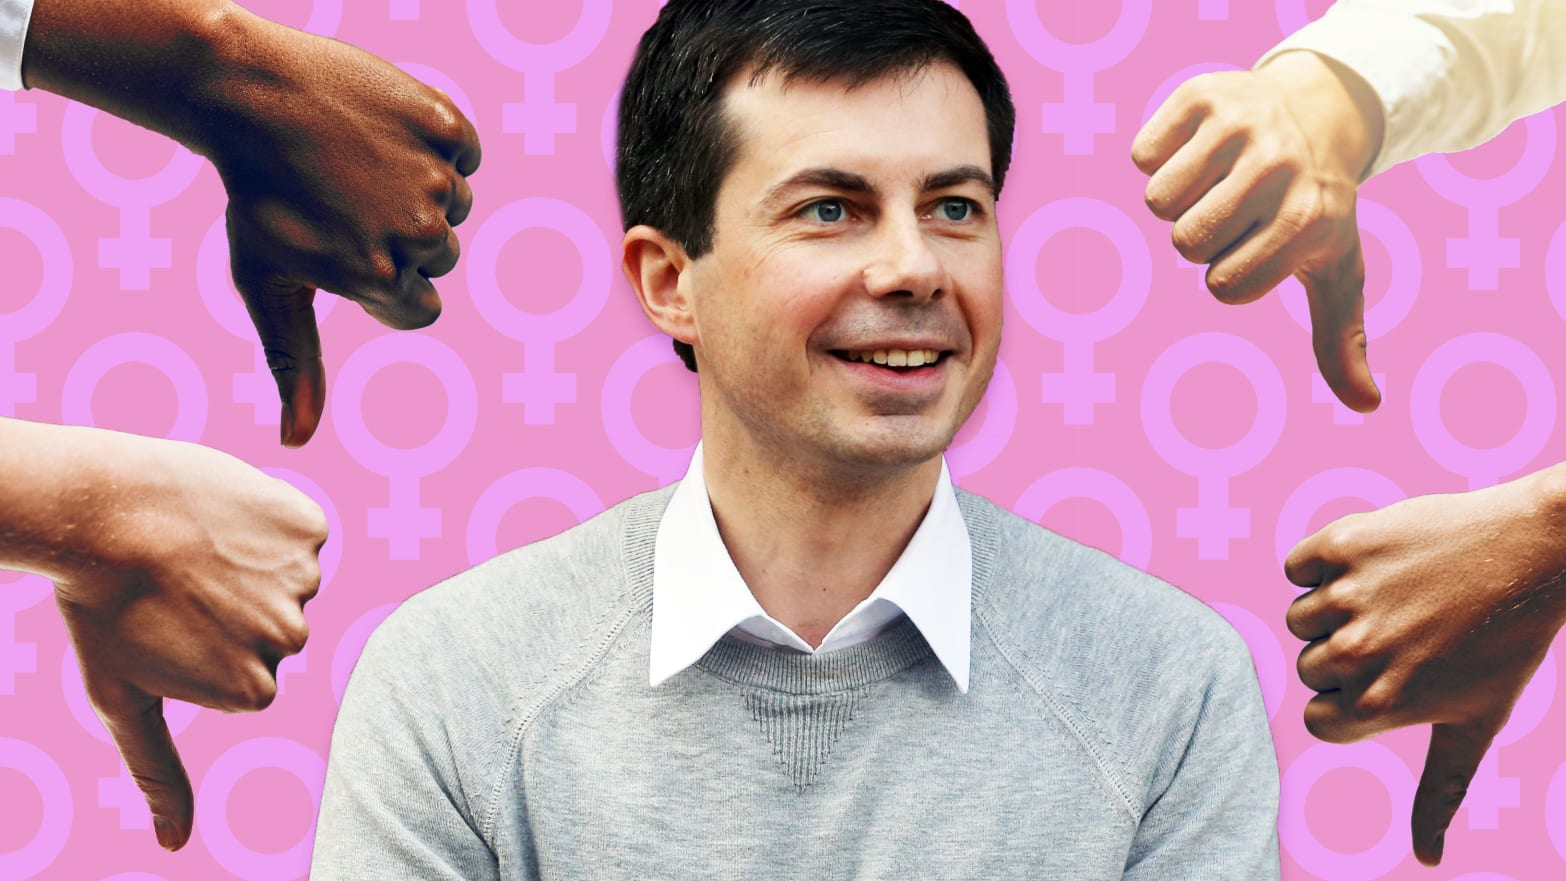 These Queer Women Don't Care That Pete Buttigieg Is Gay—They Want a Female President